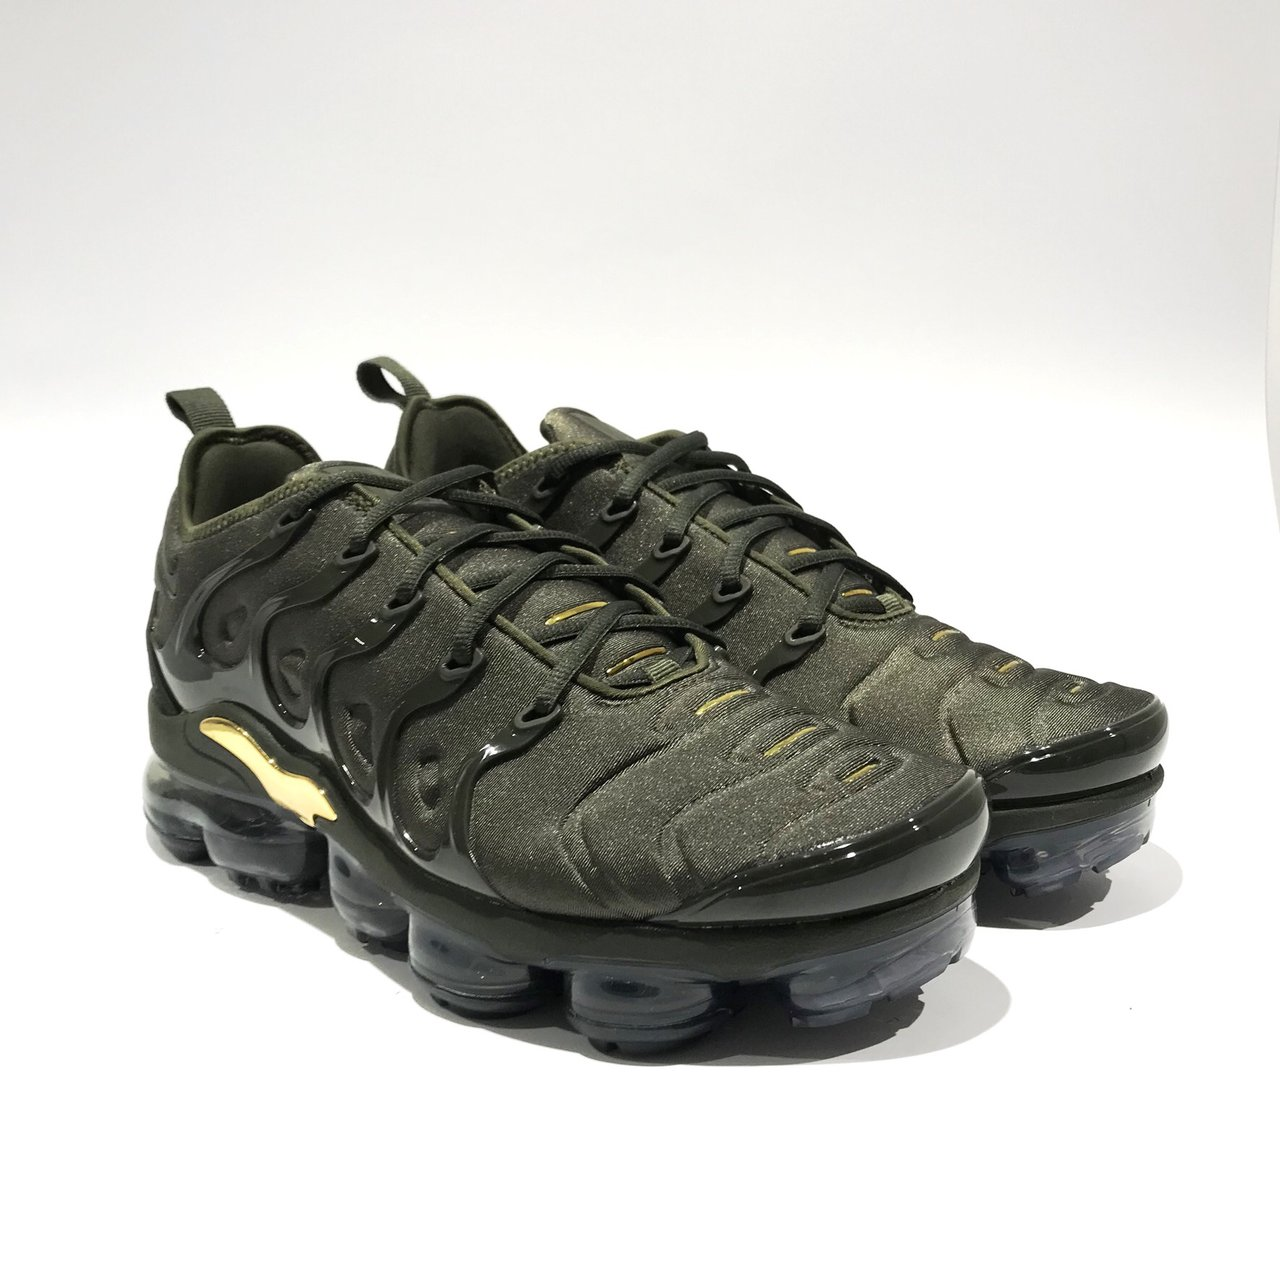 00ab804613 @theregentstore. last year. Huddersfield, United Kingdom. Nike Air Vapormax  Plus